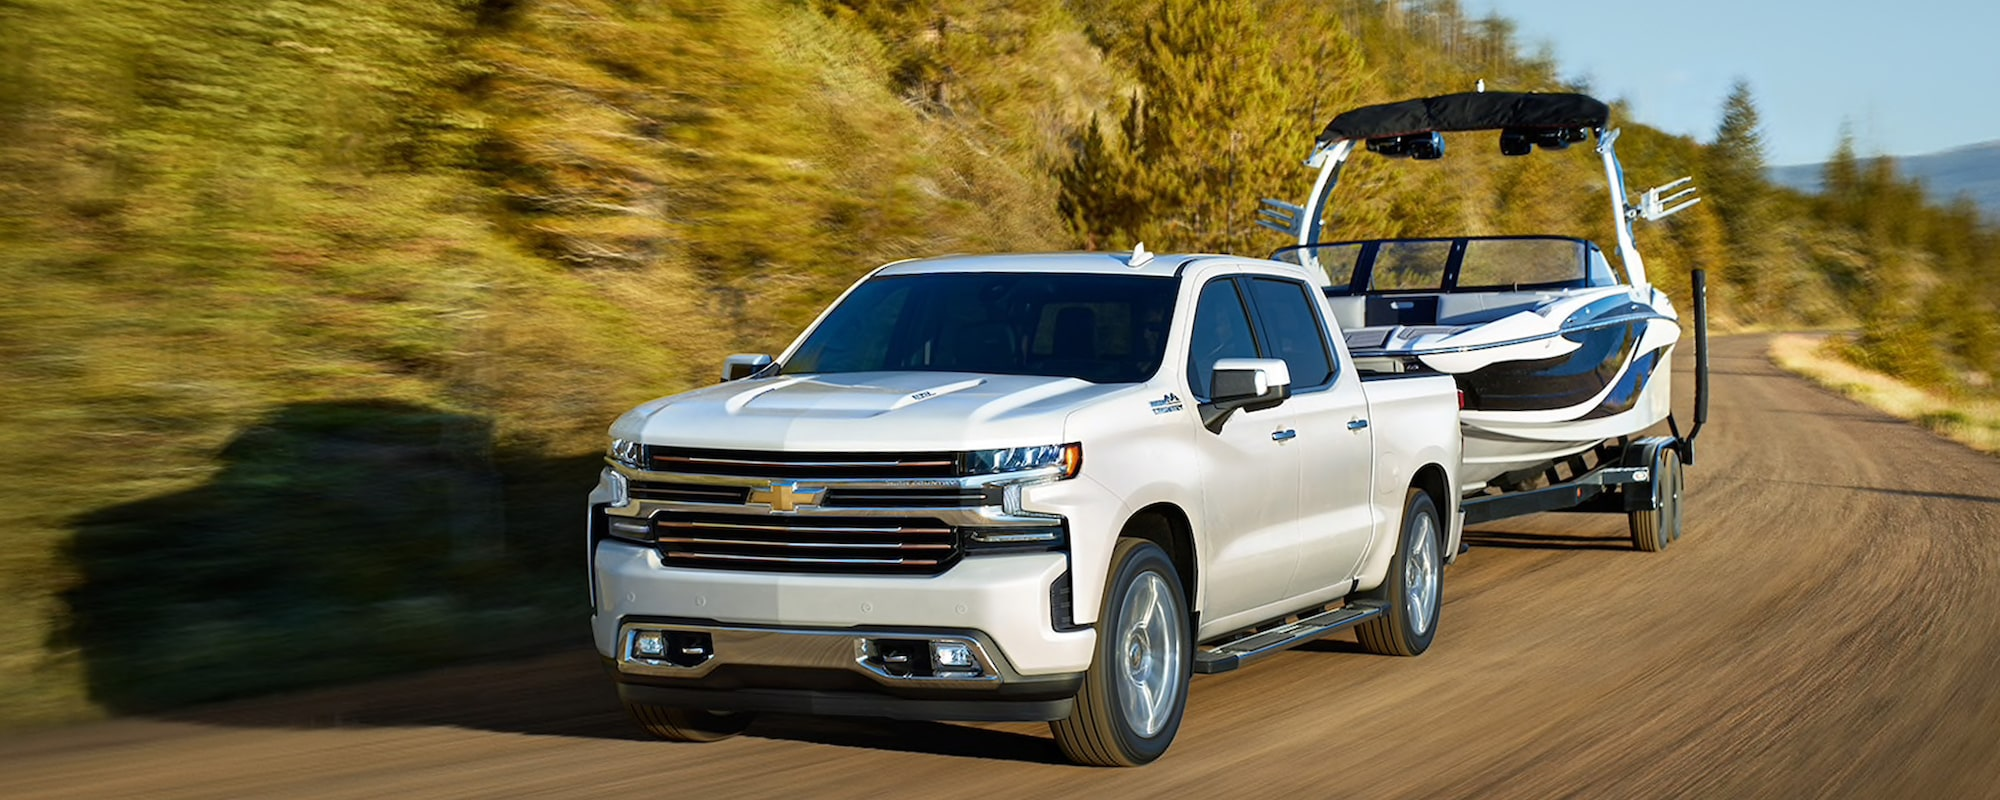 hight resolution of chevrolet trailering and towing guide